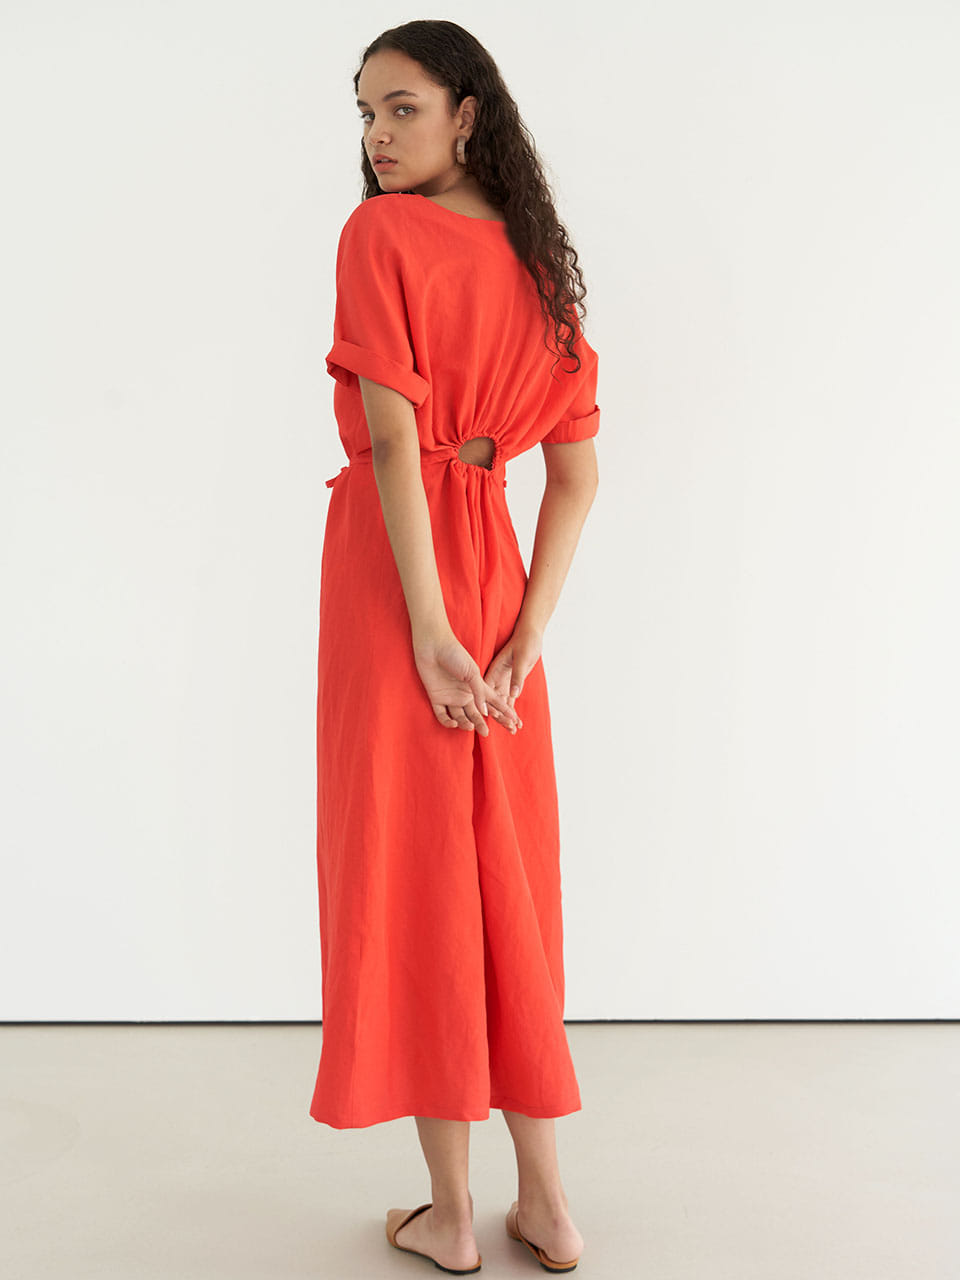 Linen Shirring Dress - Red